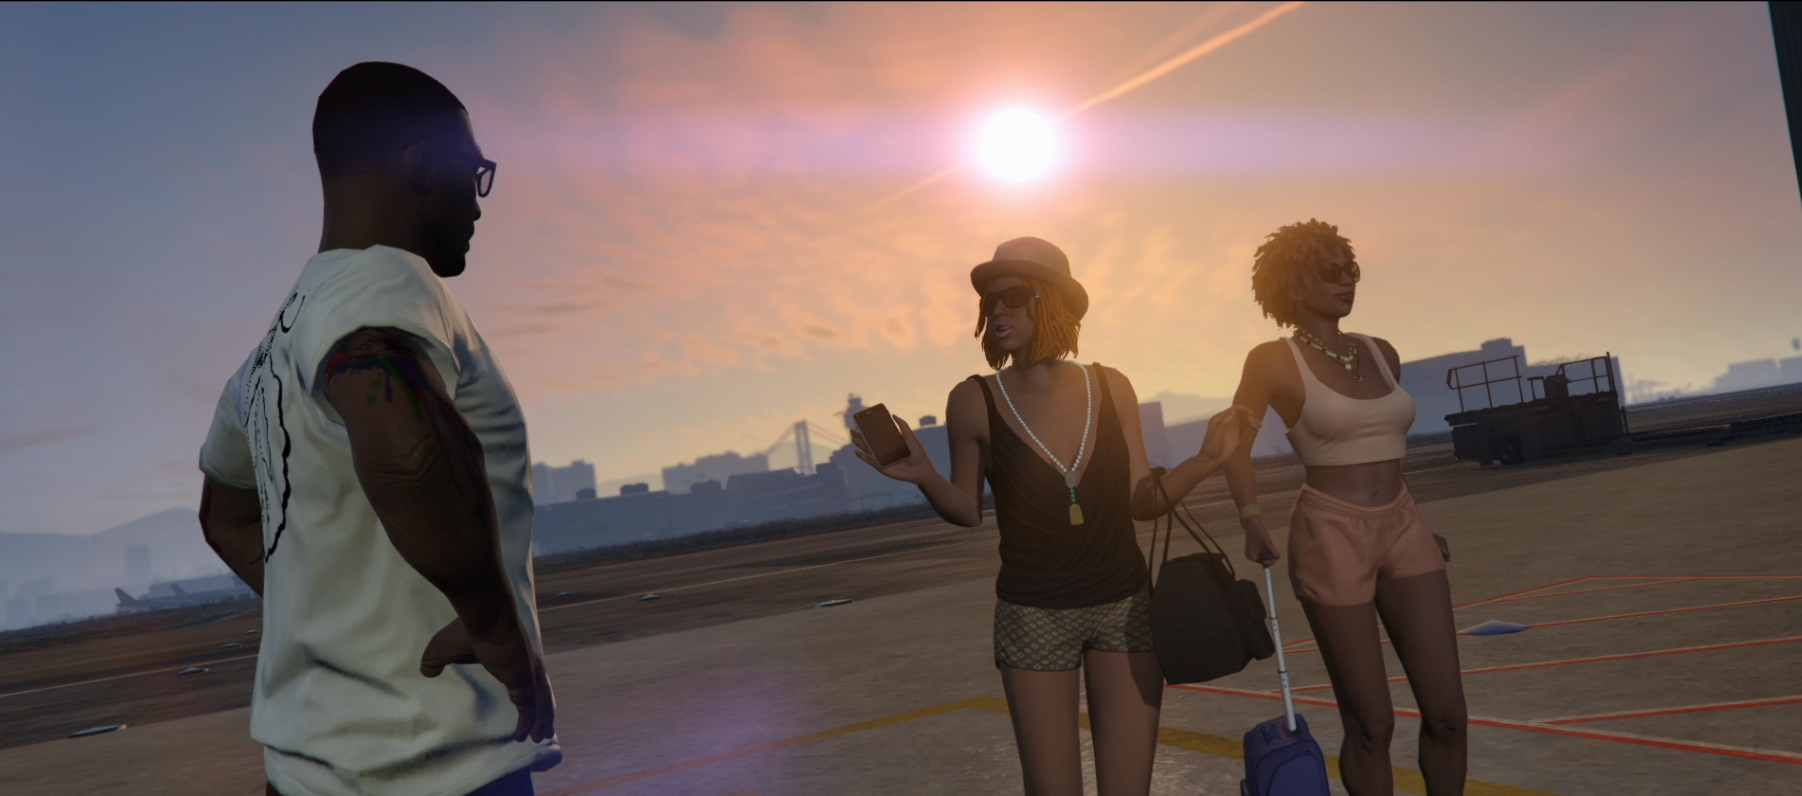 Grand Theft Auto Online - Two socialites go to board a plane in Los Santos